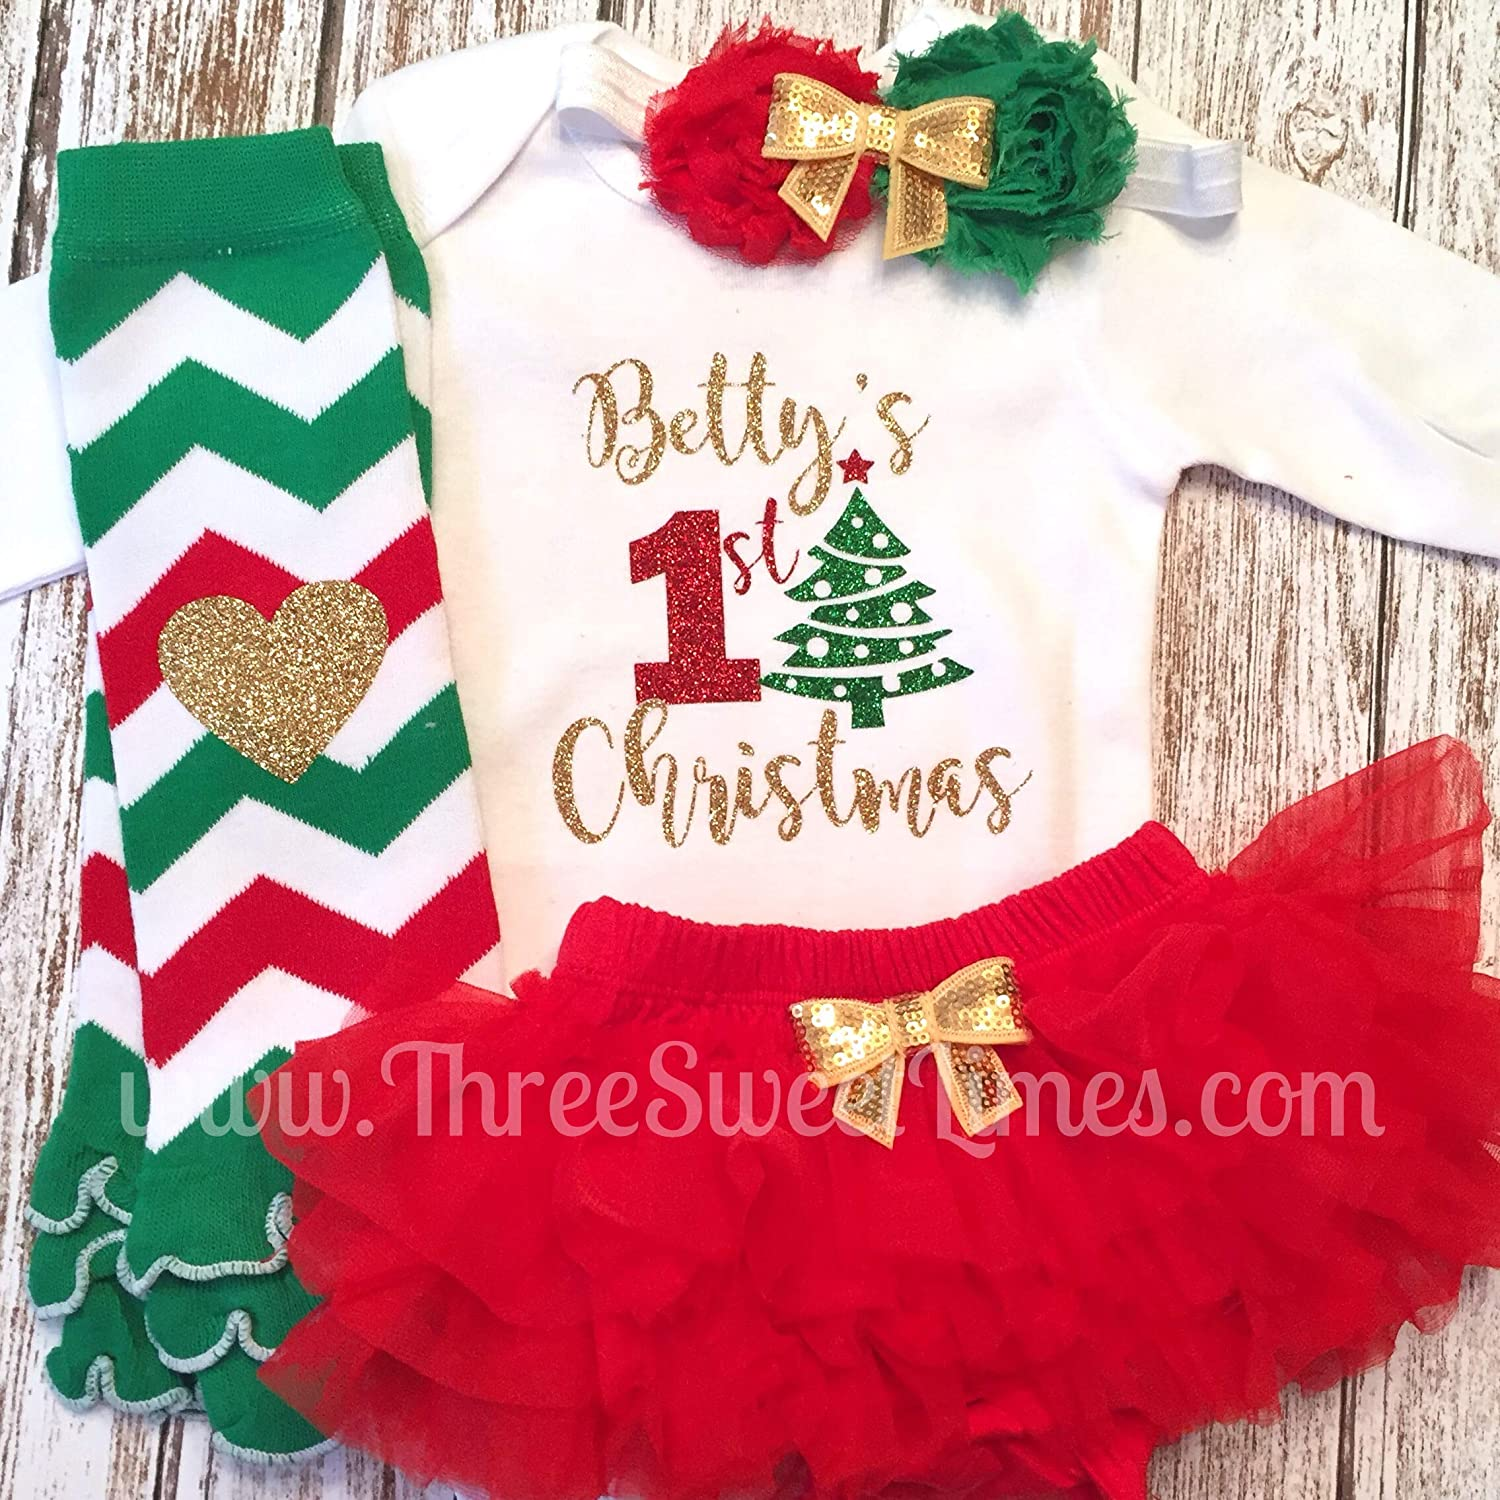 red tutu Personalized baby girl My First Christmas outfit Christmas ornament included with a sparkly Christmas bow. red bodysuit